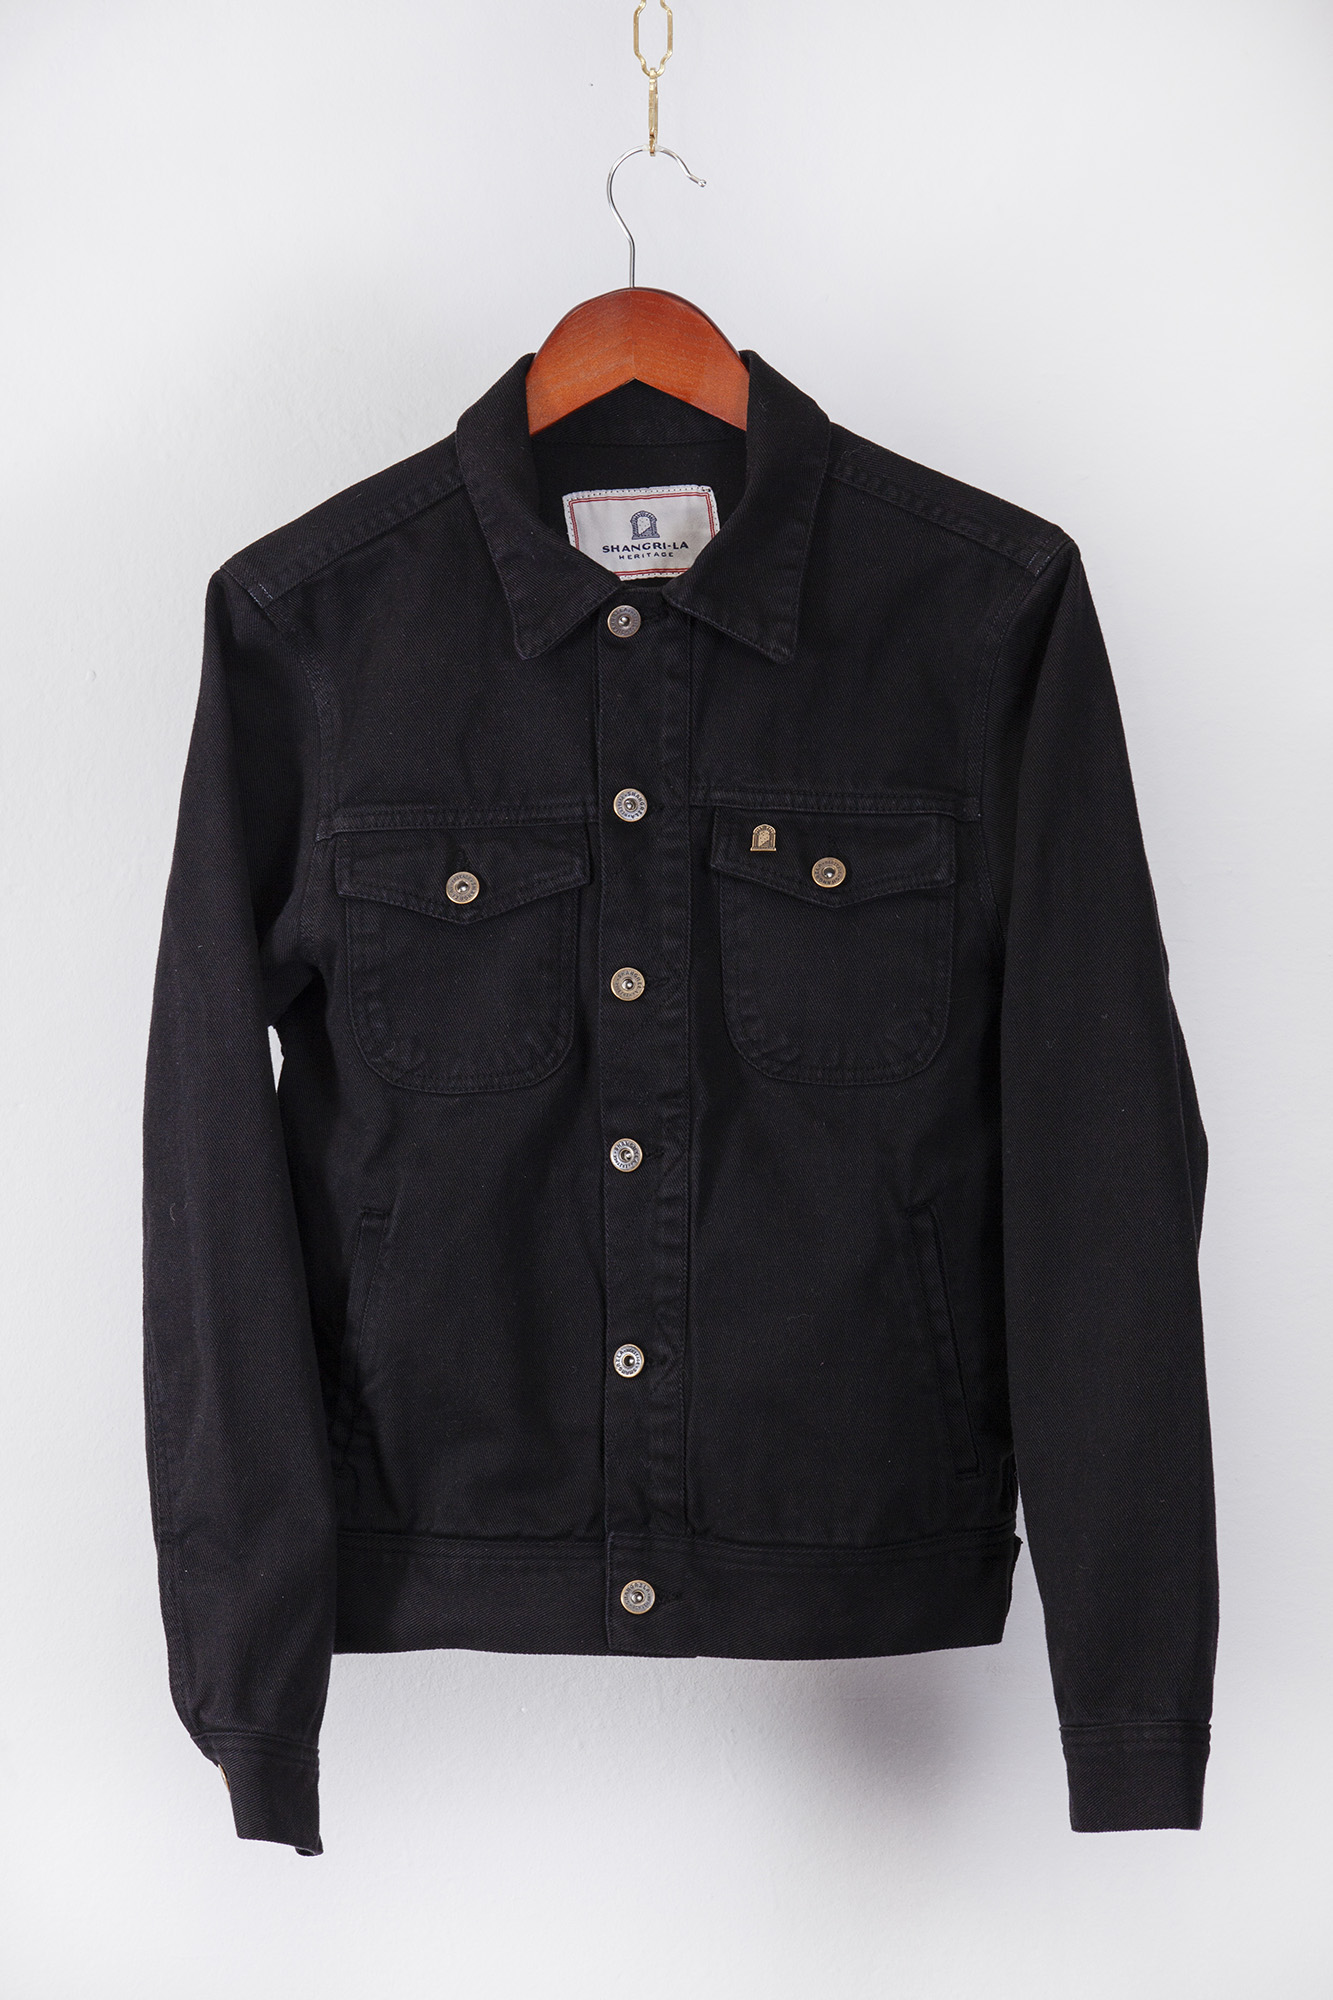 shangri-la-heritage-single-rider-black-canvas-jacket-still-life-front